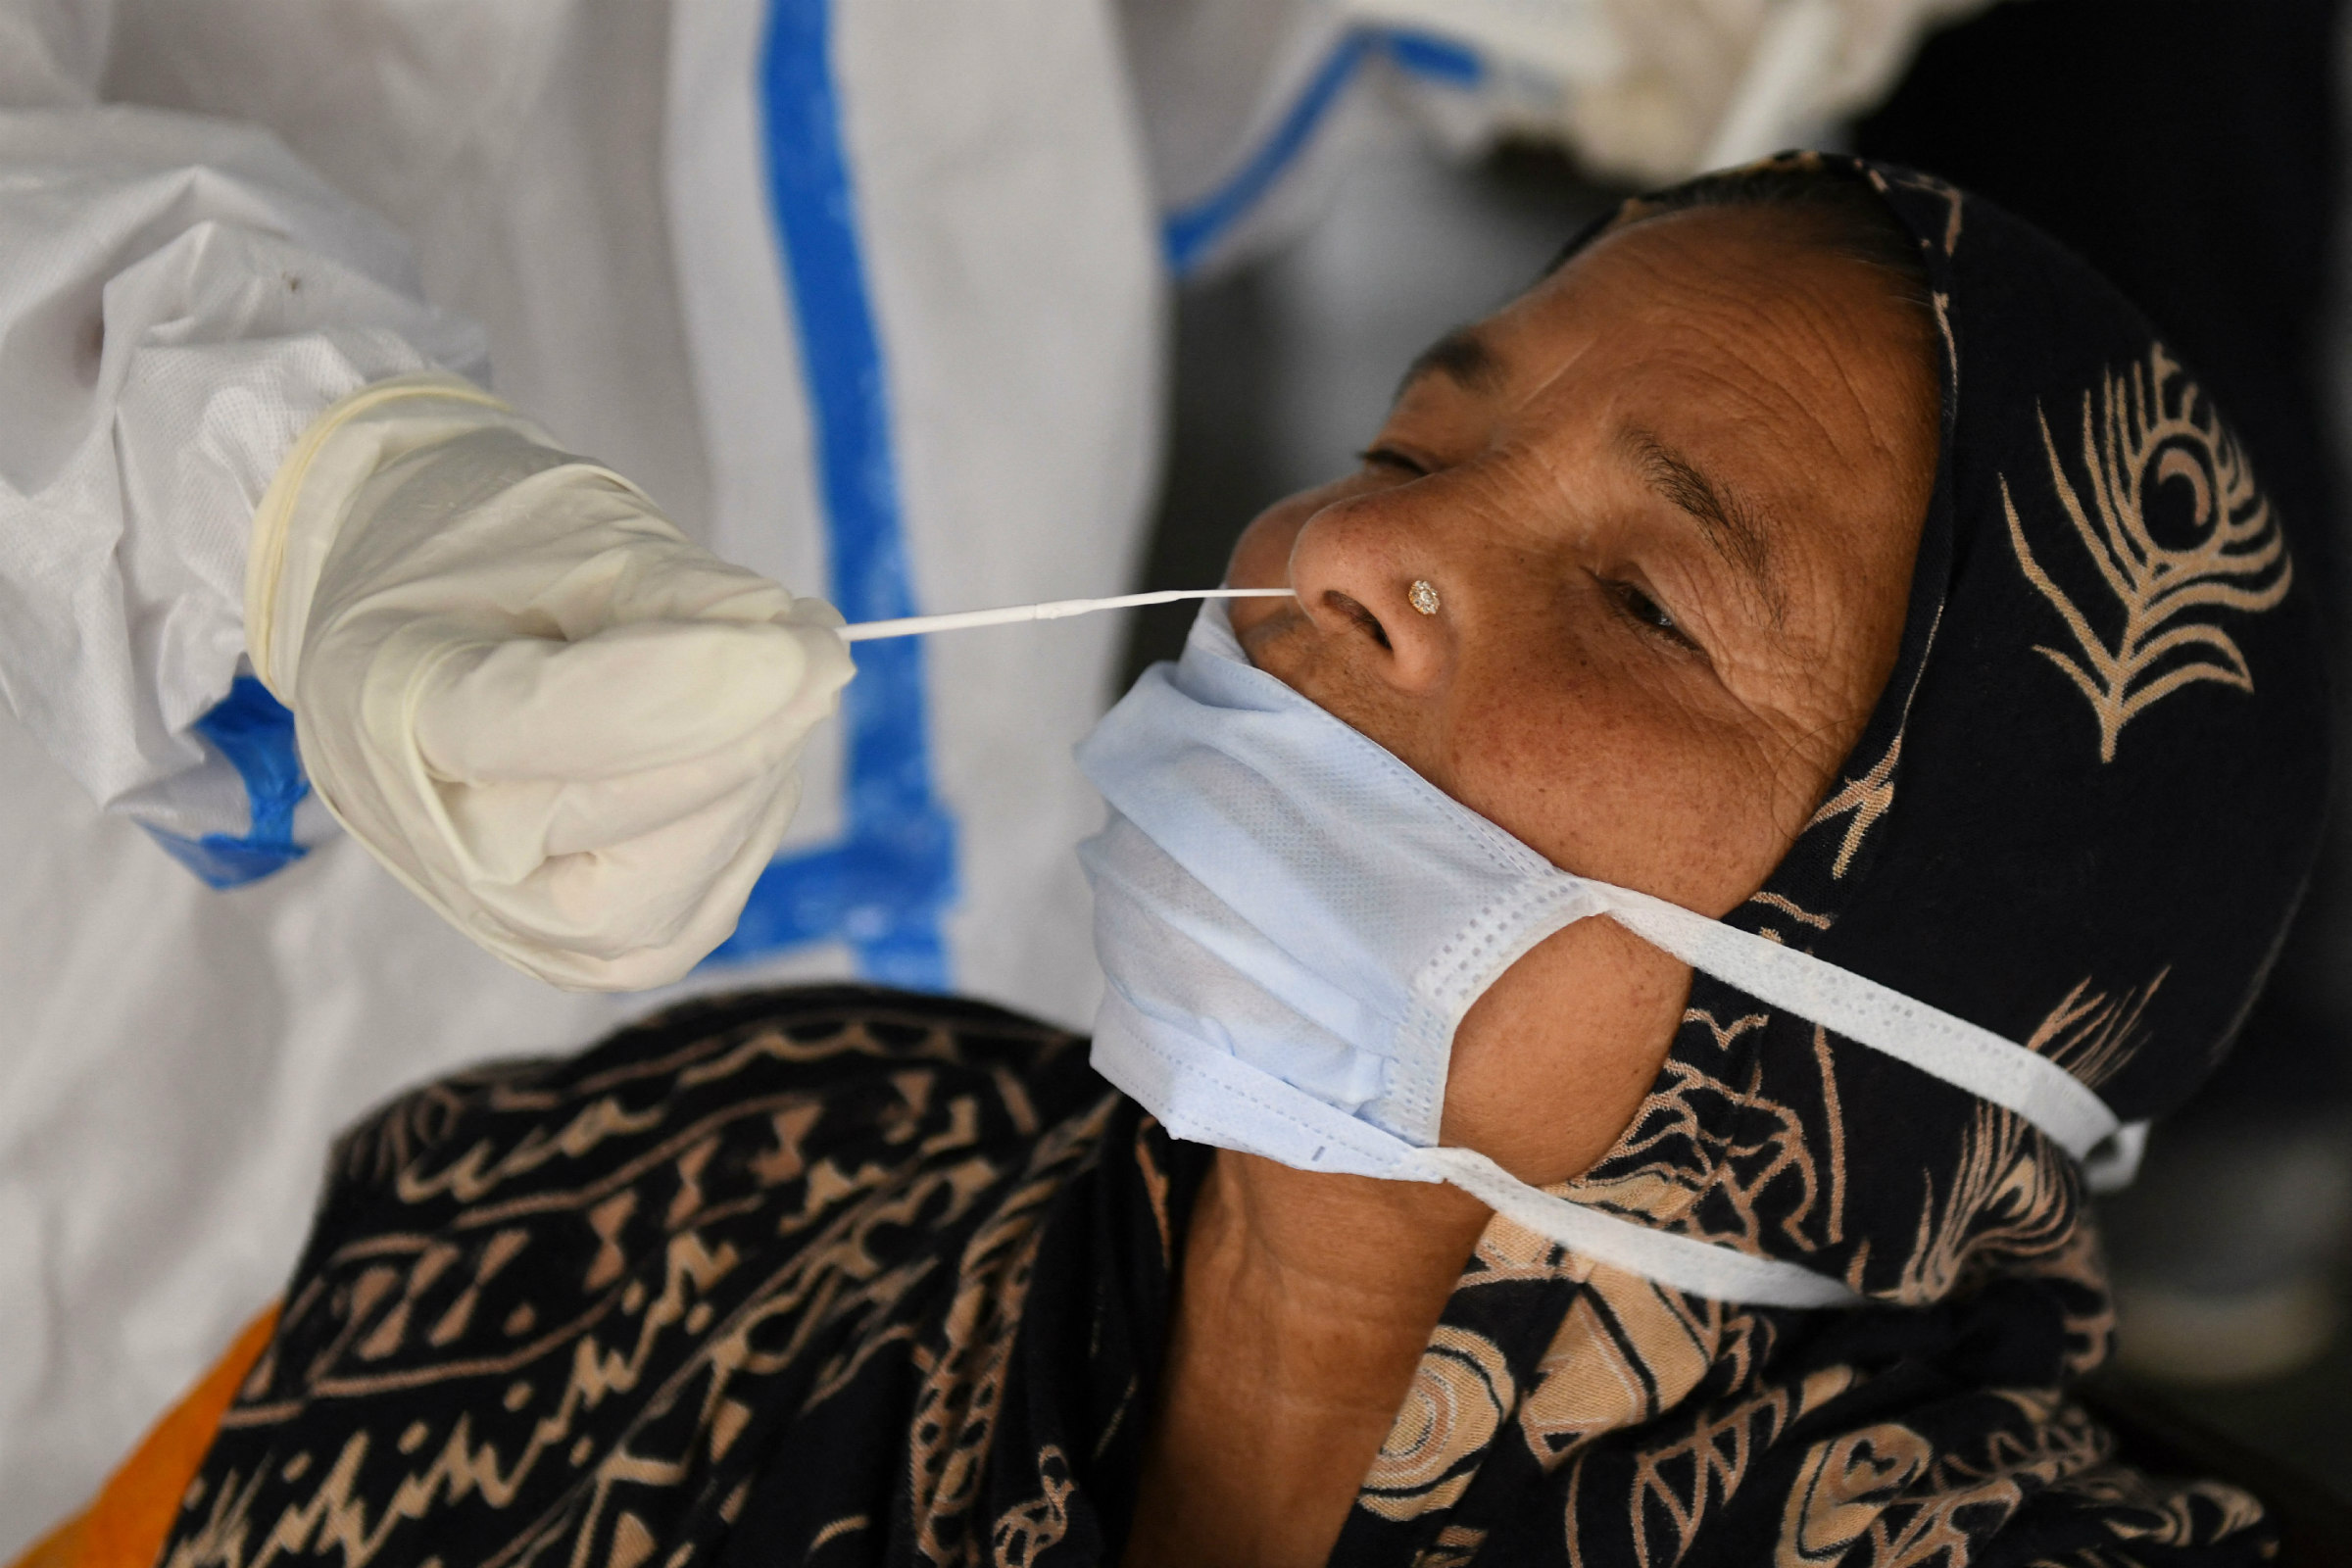 an Indian woman wearing a hijab leans her head back as a swab is stuck in her nostril